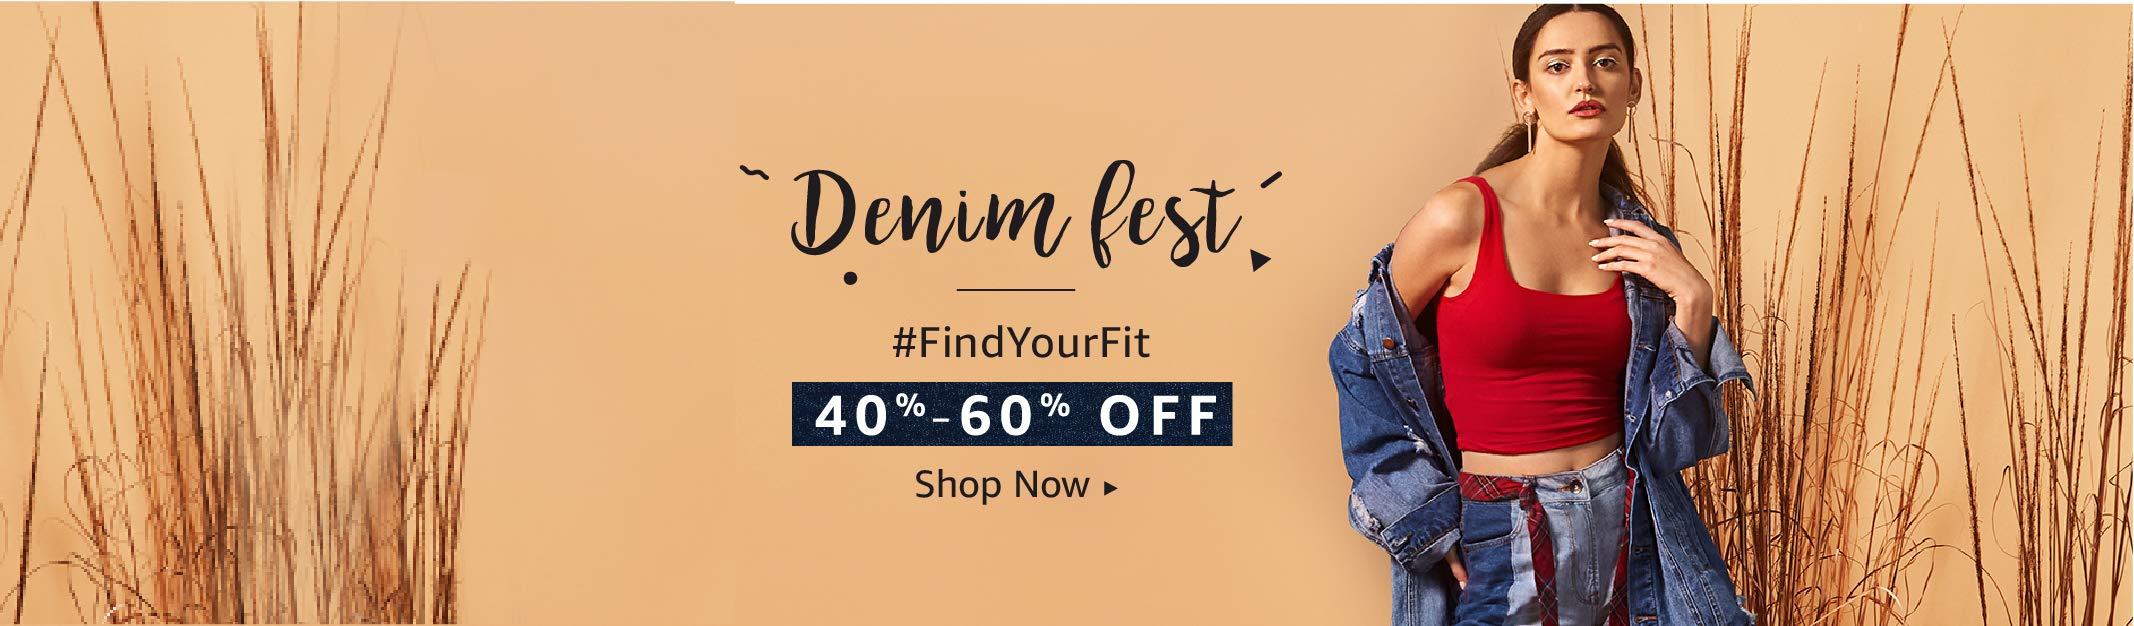 c95c6929f1f Jeans For Girls  Buy Ladies Jeans online at best prices in India ...